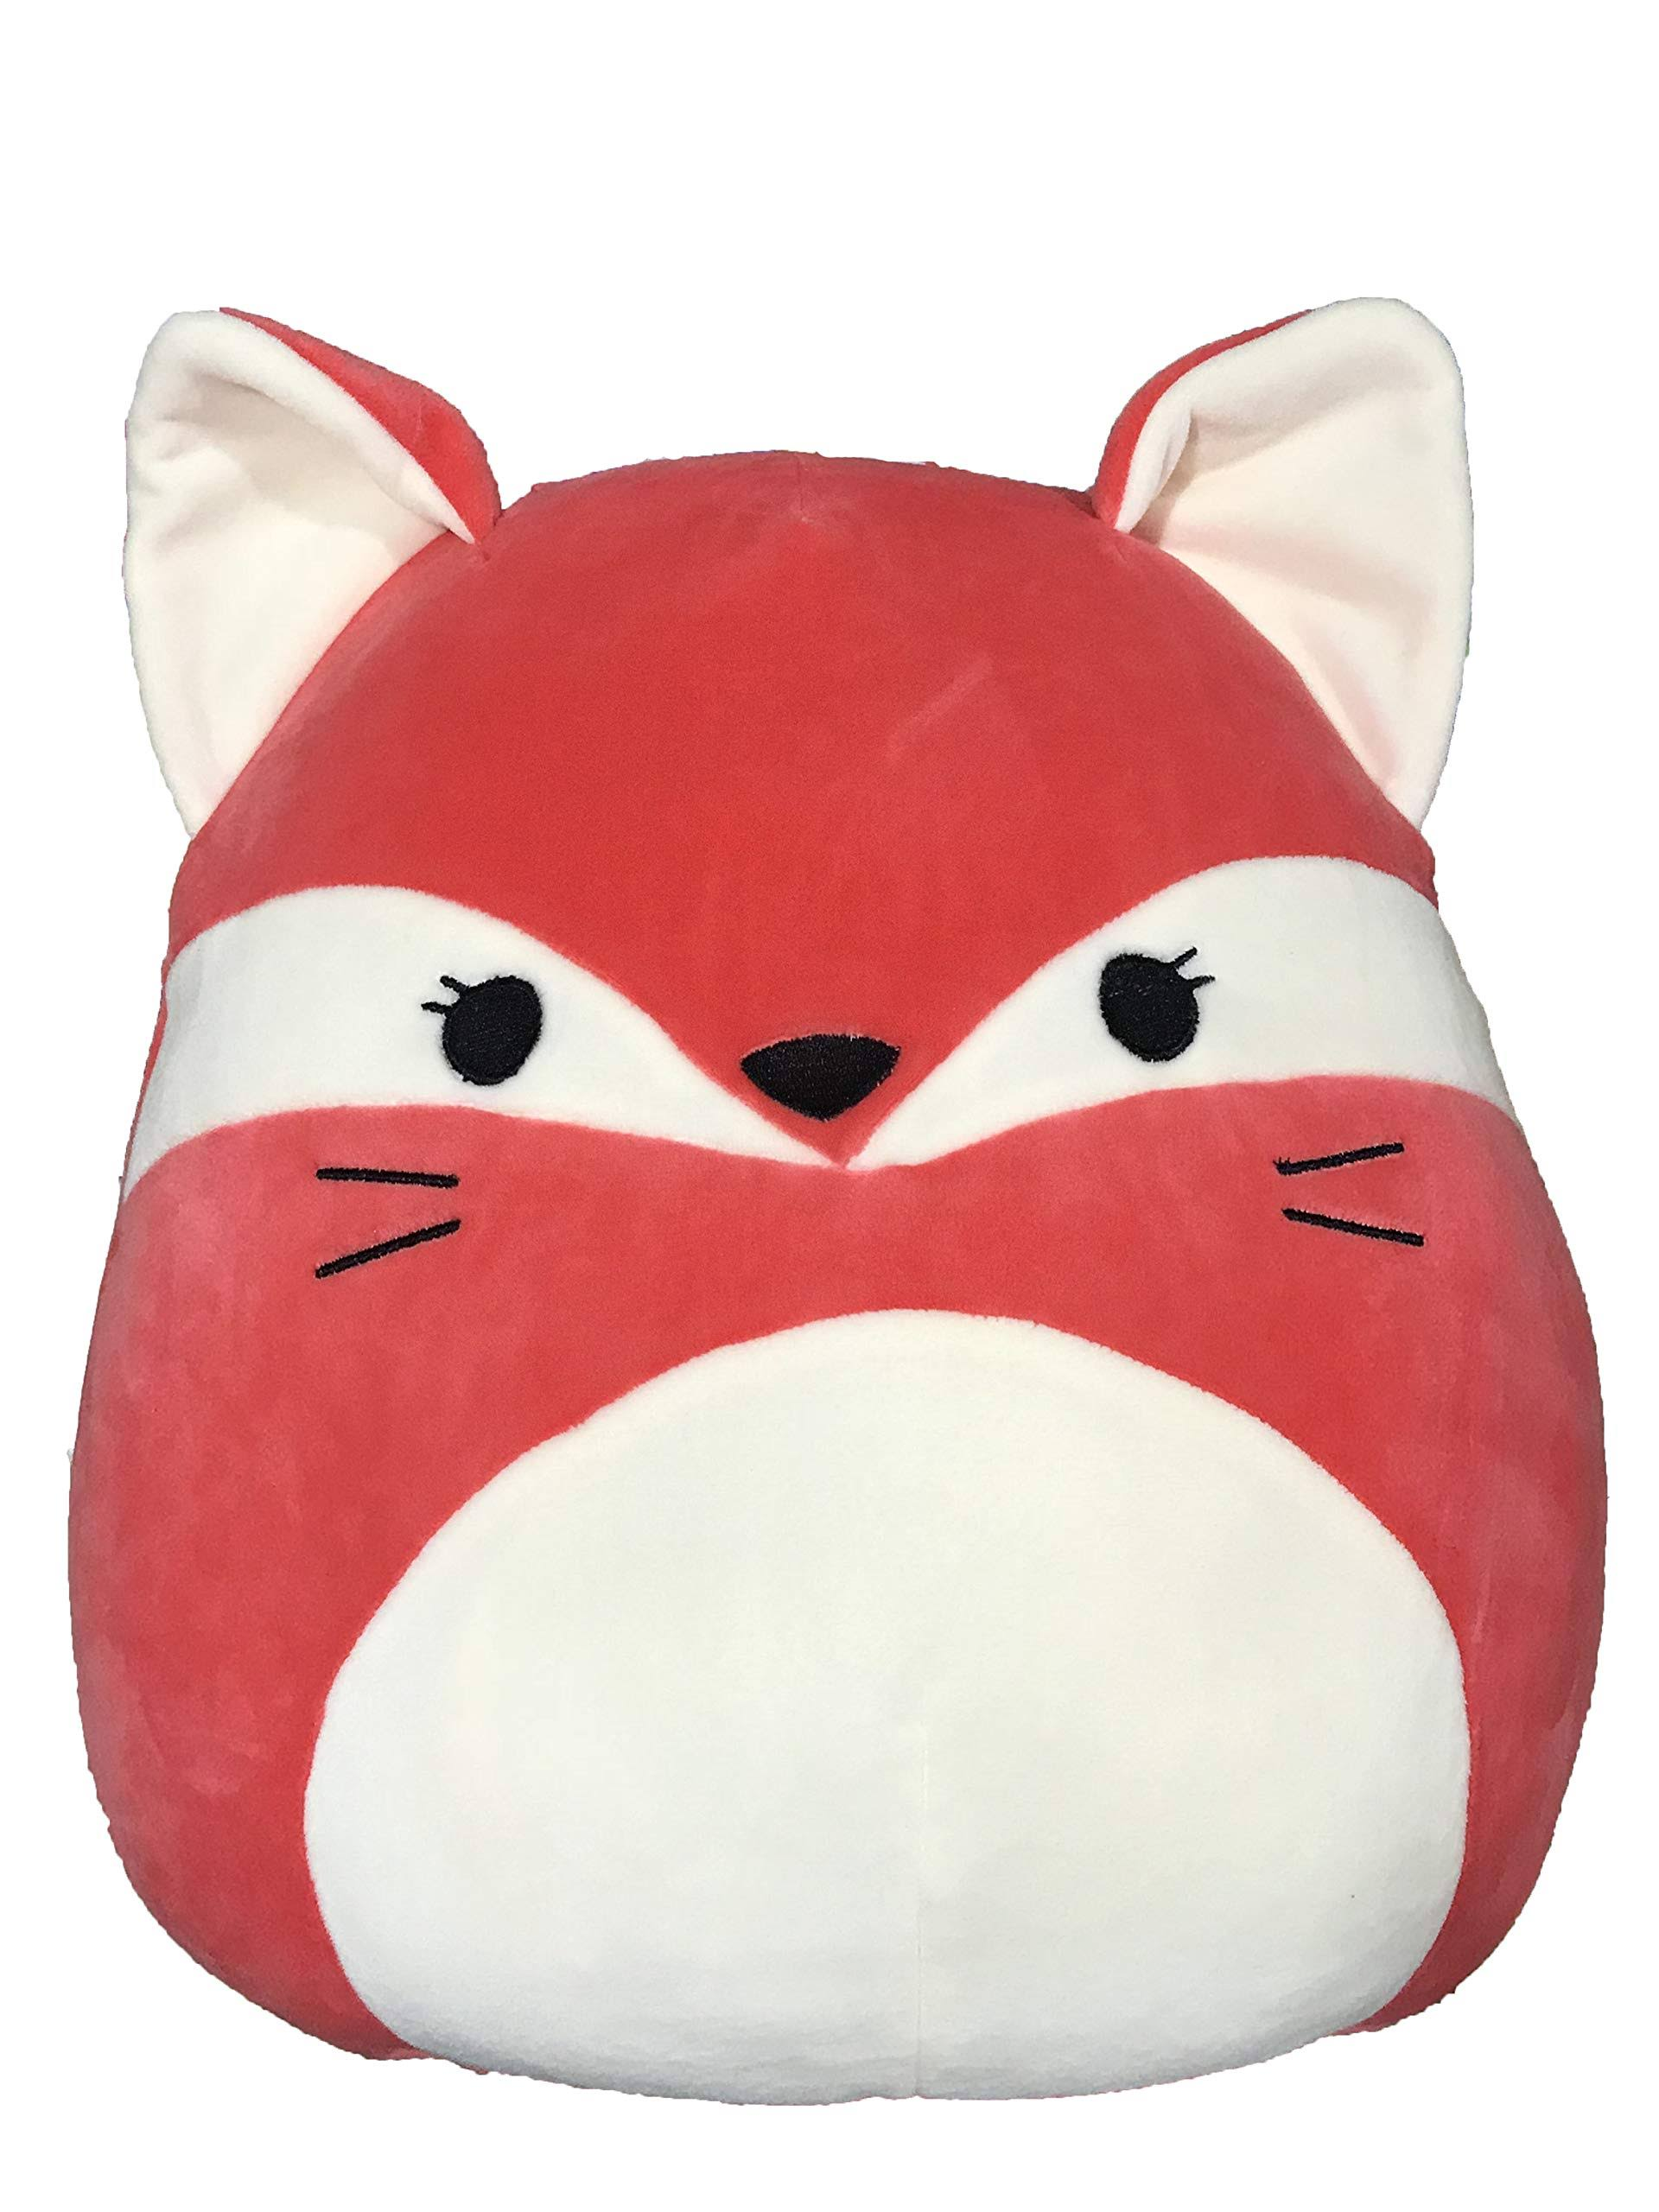 Kellytoy Squishmallow Fifi The Fox Super Soft Plush Toy - 13""